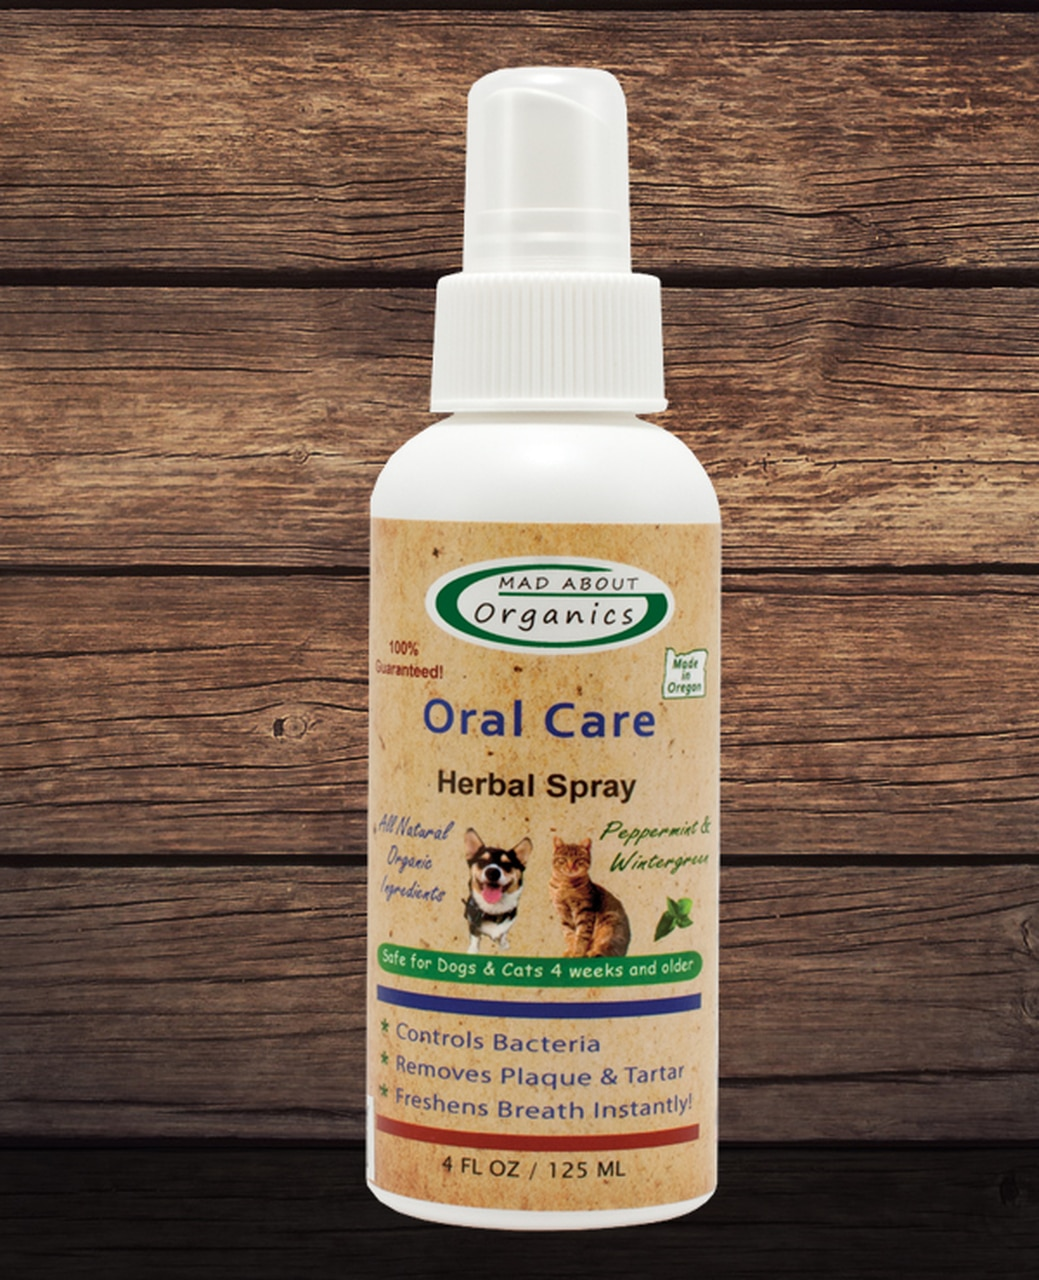 Mad About Organics Oral Care Herbal Spray for Dogs & Cats, 4-oz